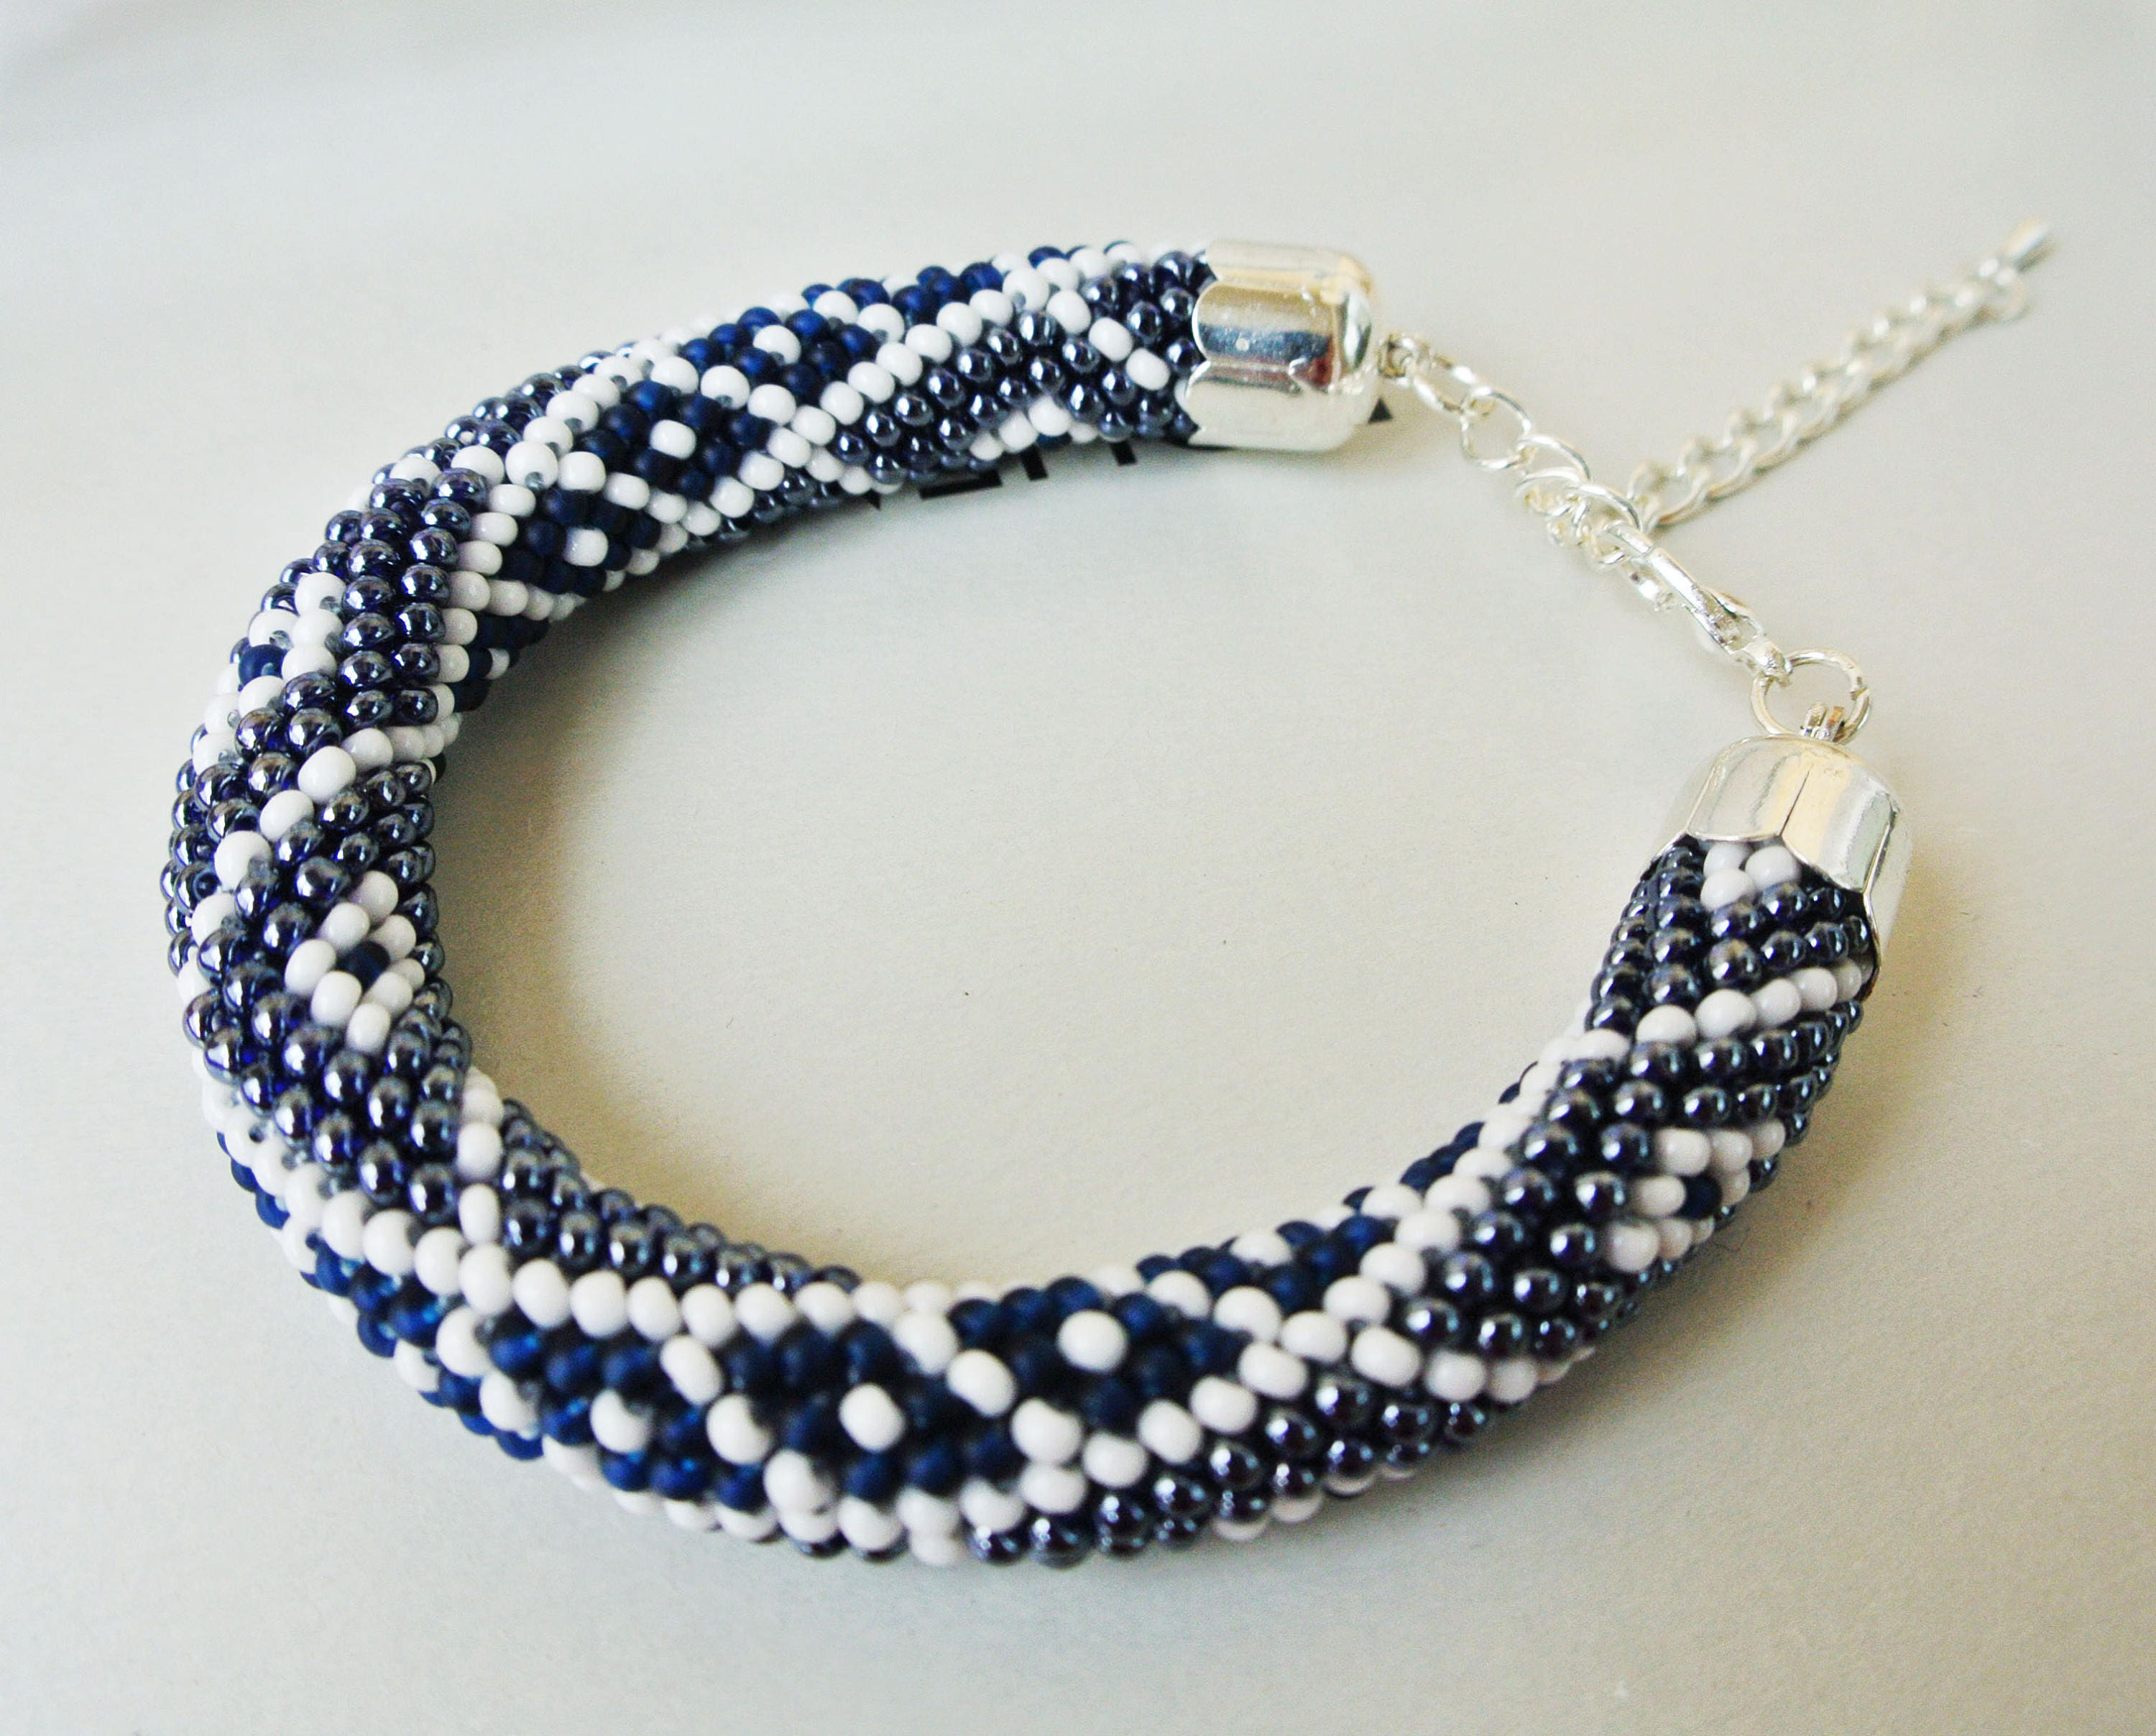 how to make rope necklace with beads